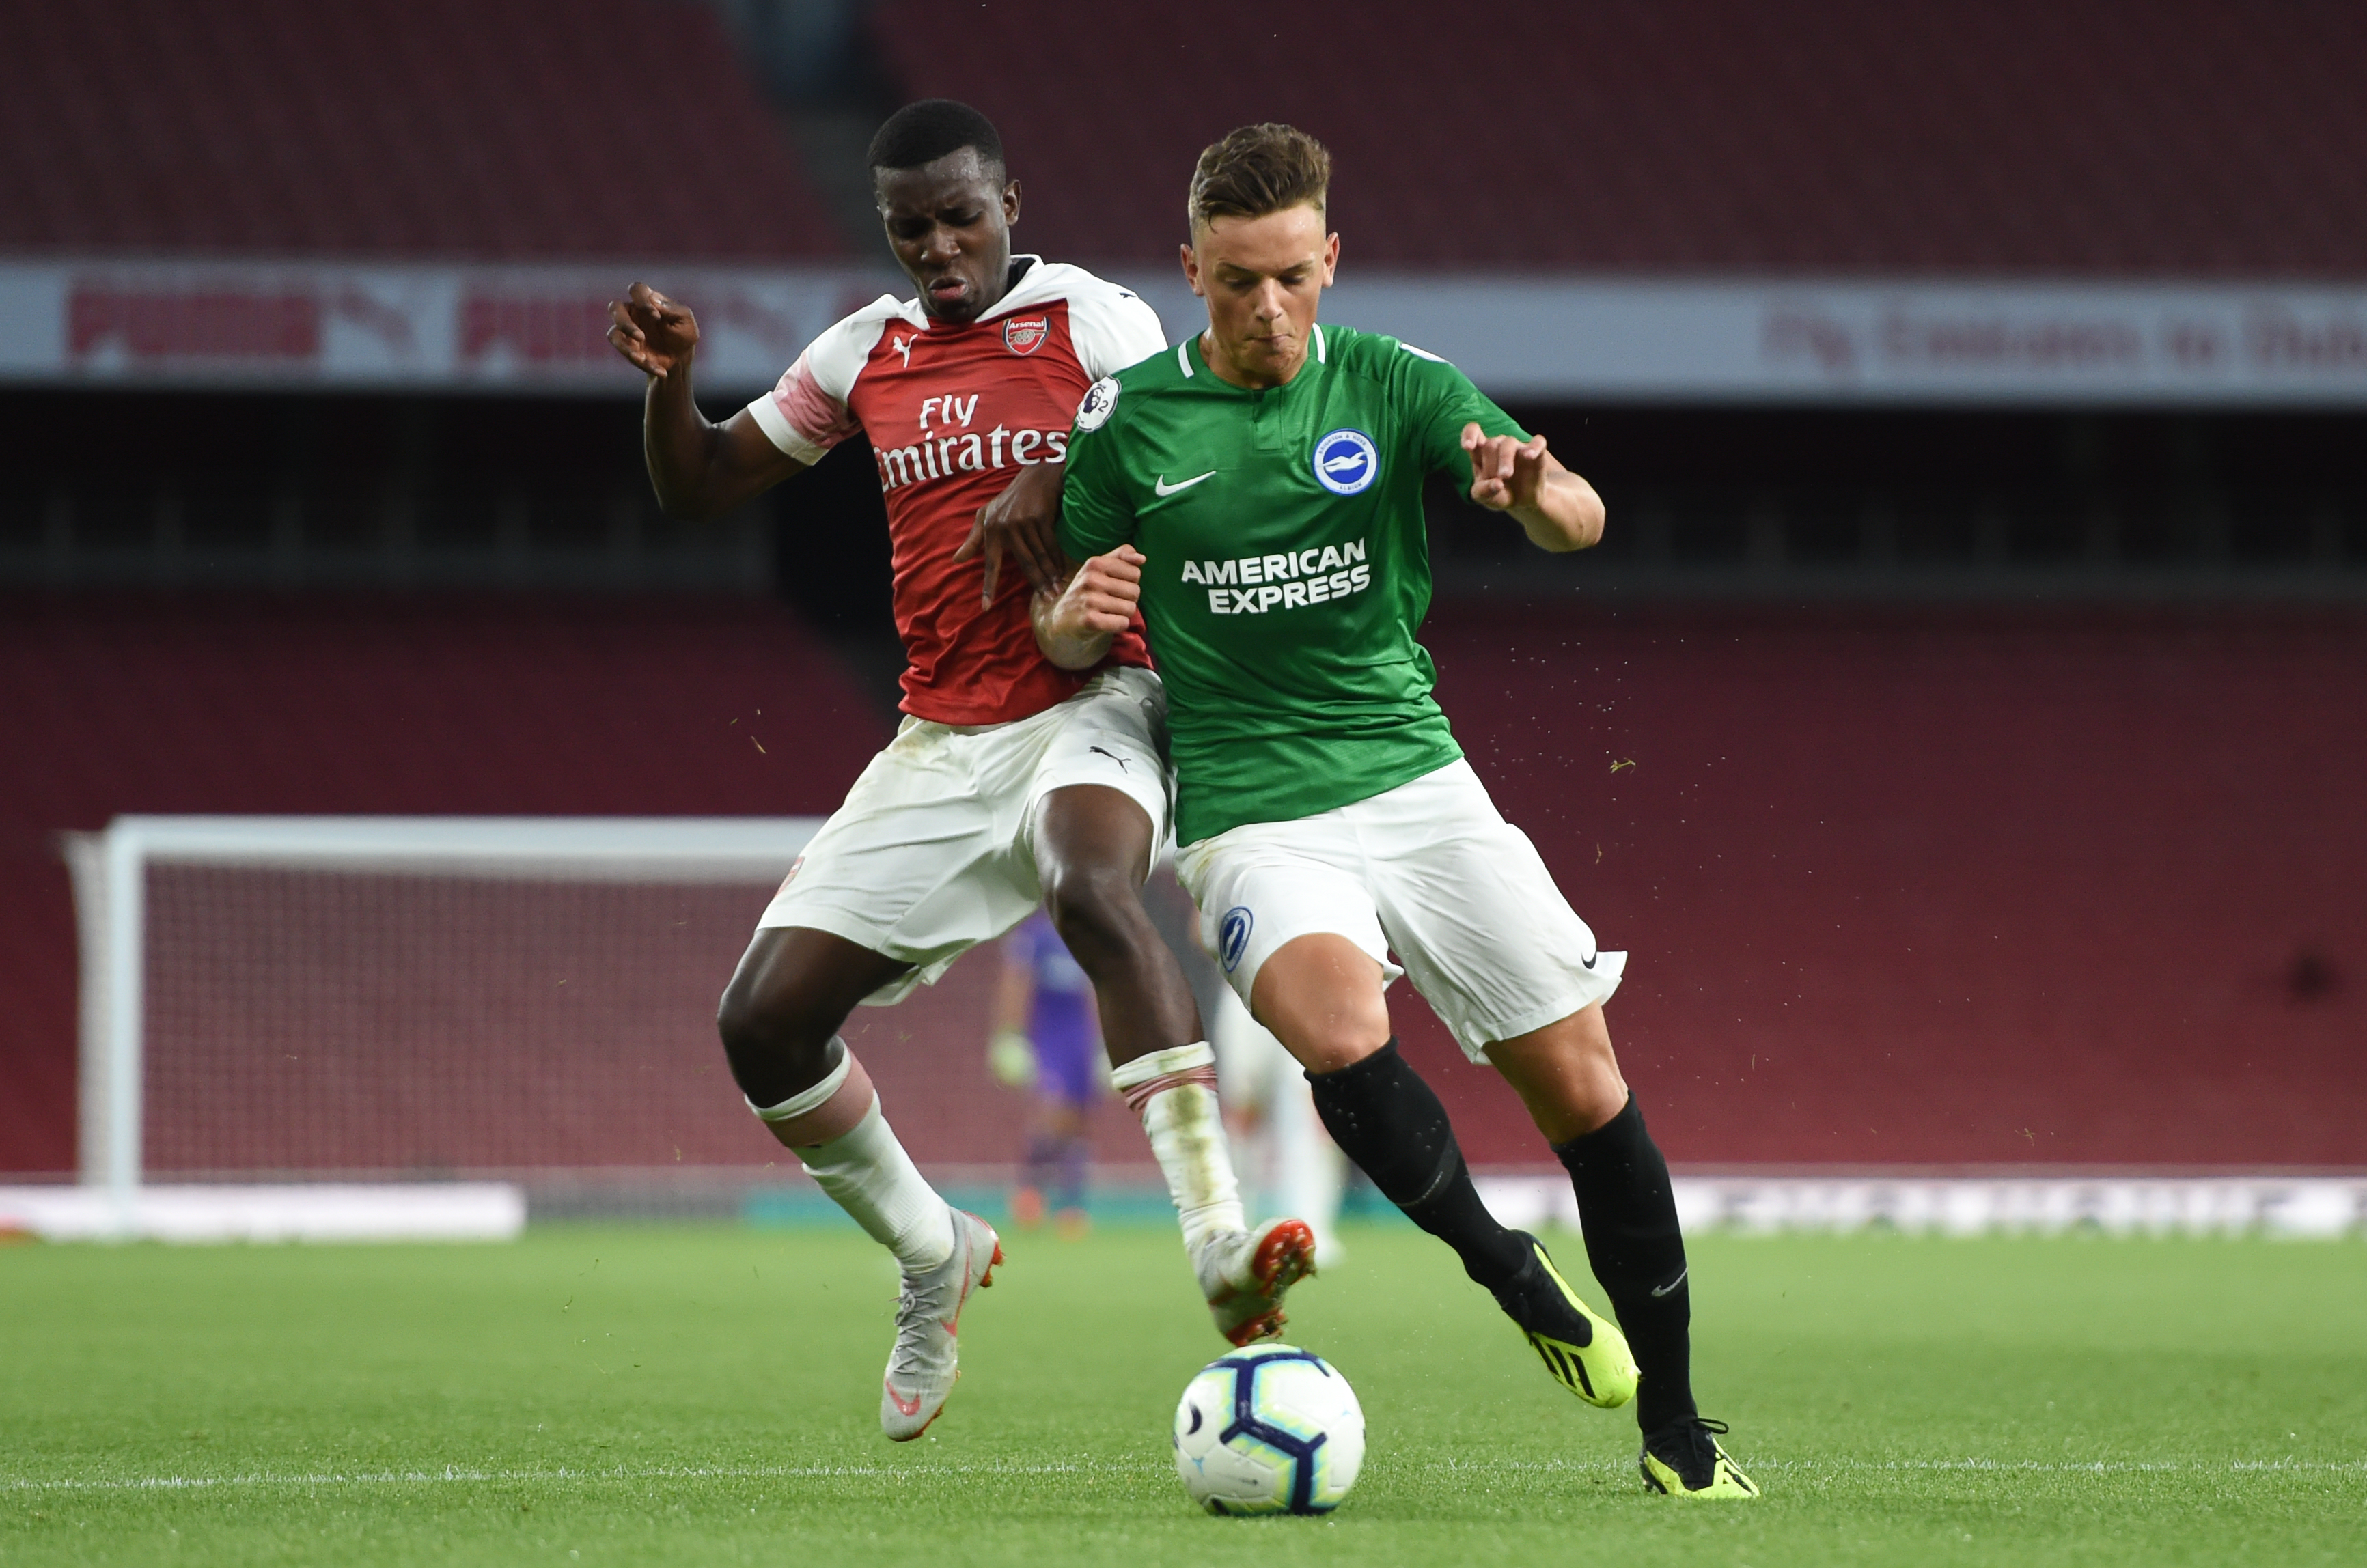 Ben White on his way to Arsenal? (Picture Courtesy - AFP/Getty Images)